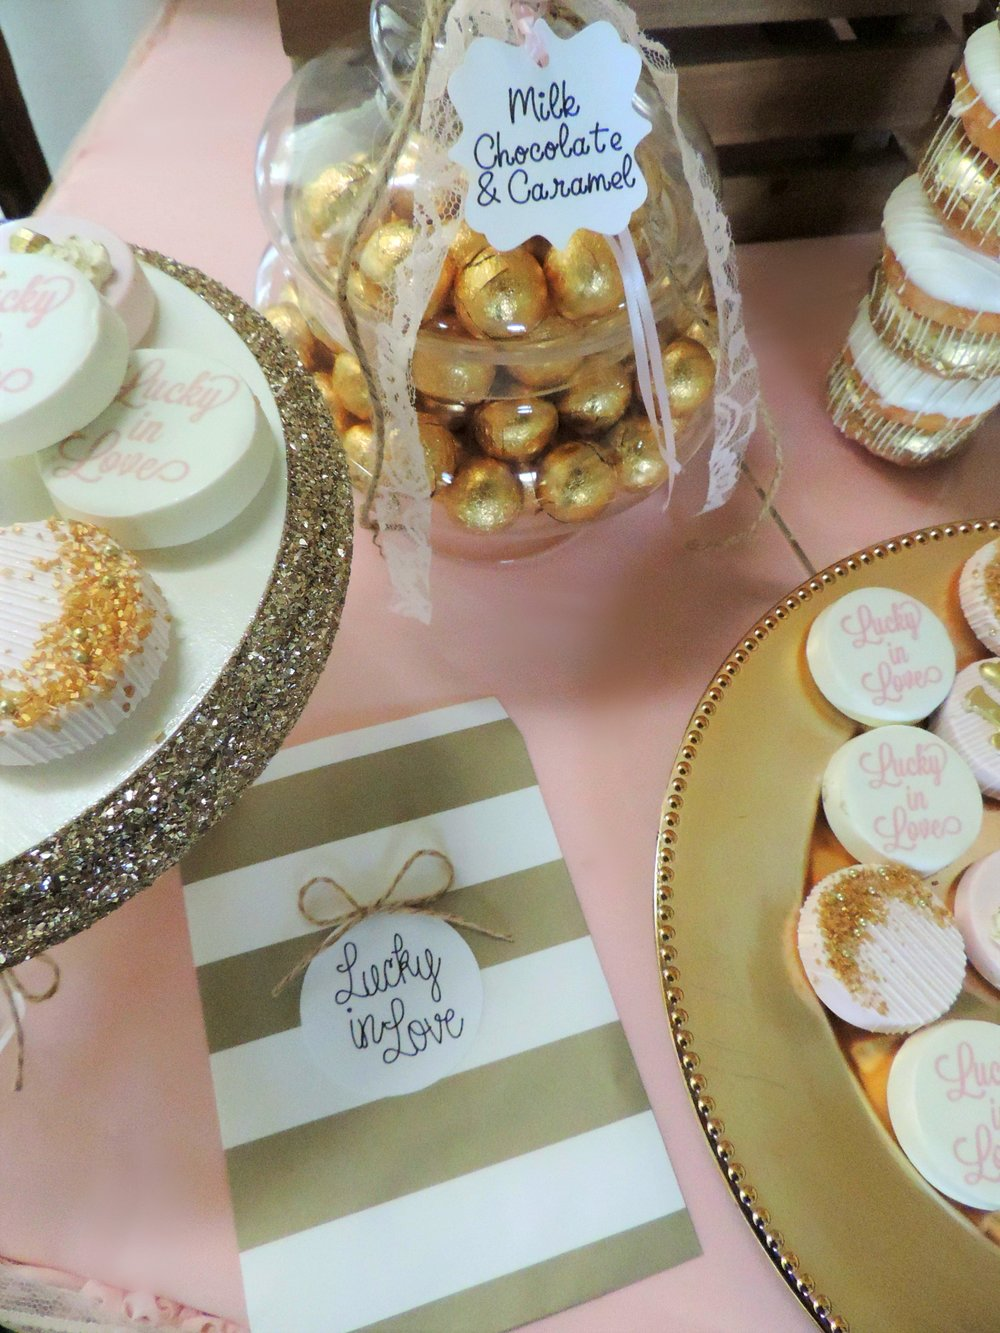 Rustic Wedding-Blush pink wedding-wedding dessert table-wedding candy-www.SugarPartiesLA.com.jpg